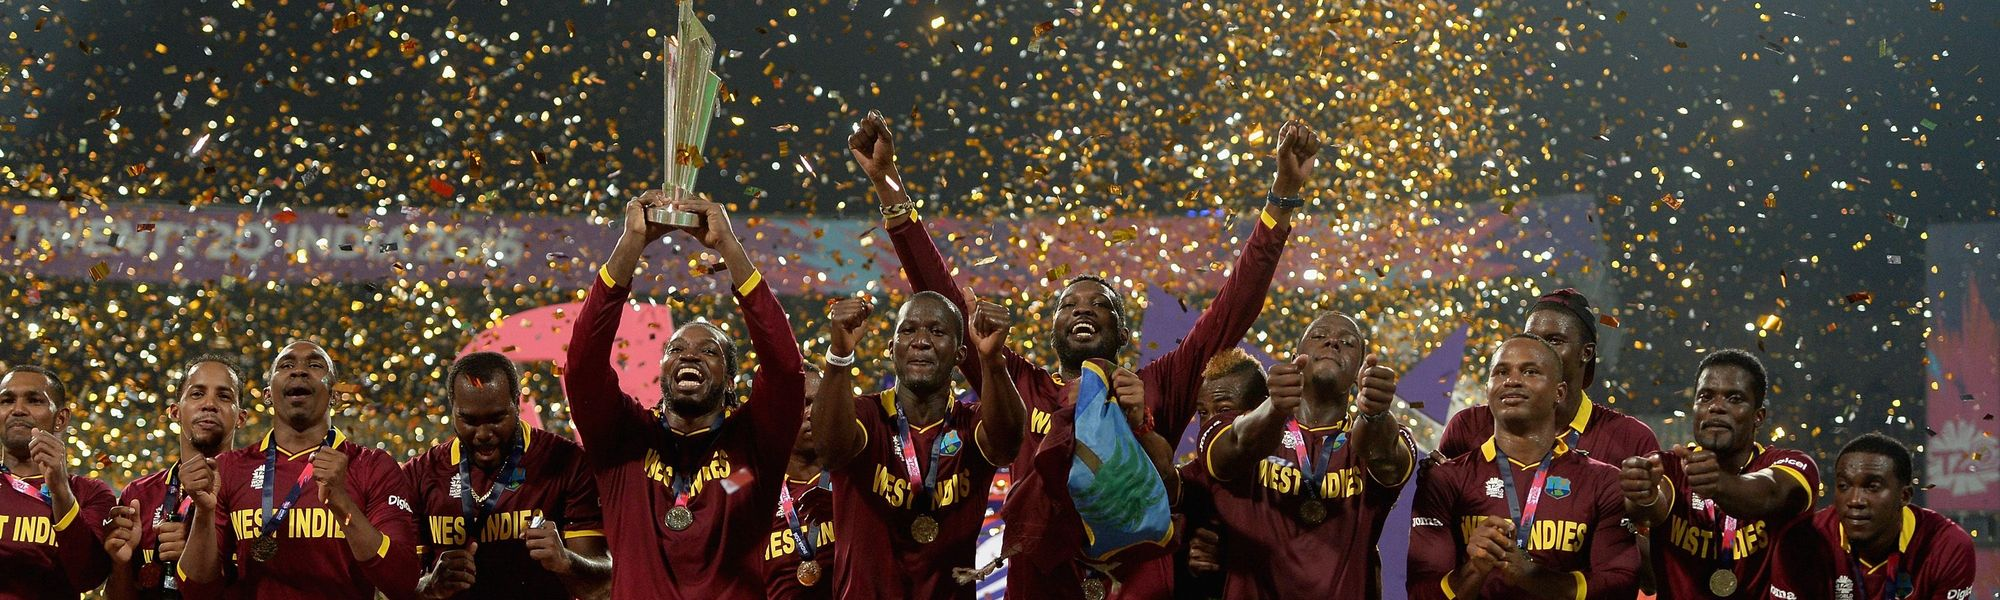 West Indies T20 World Cup 2016